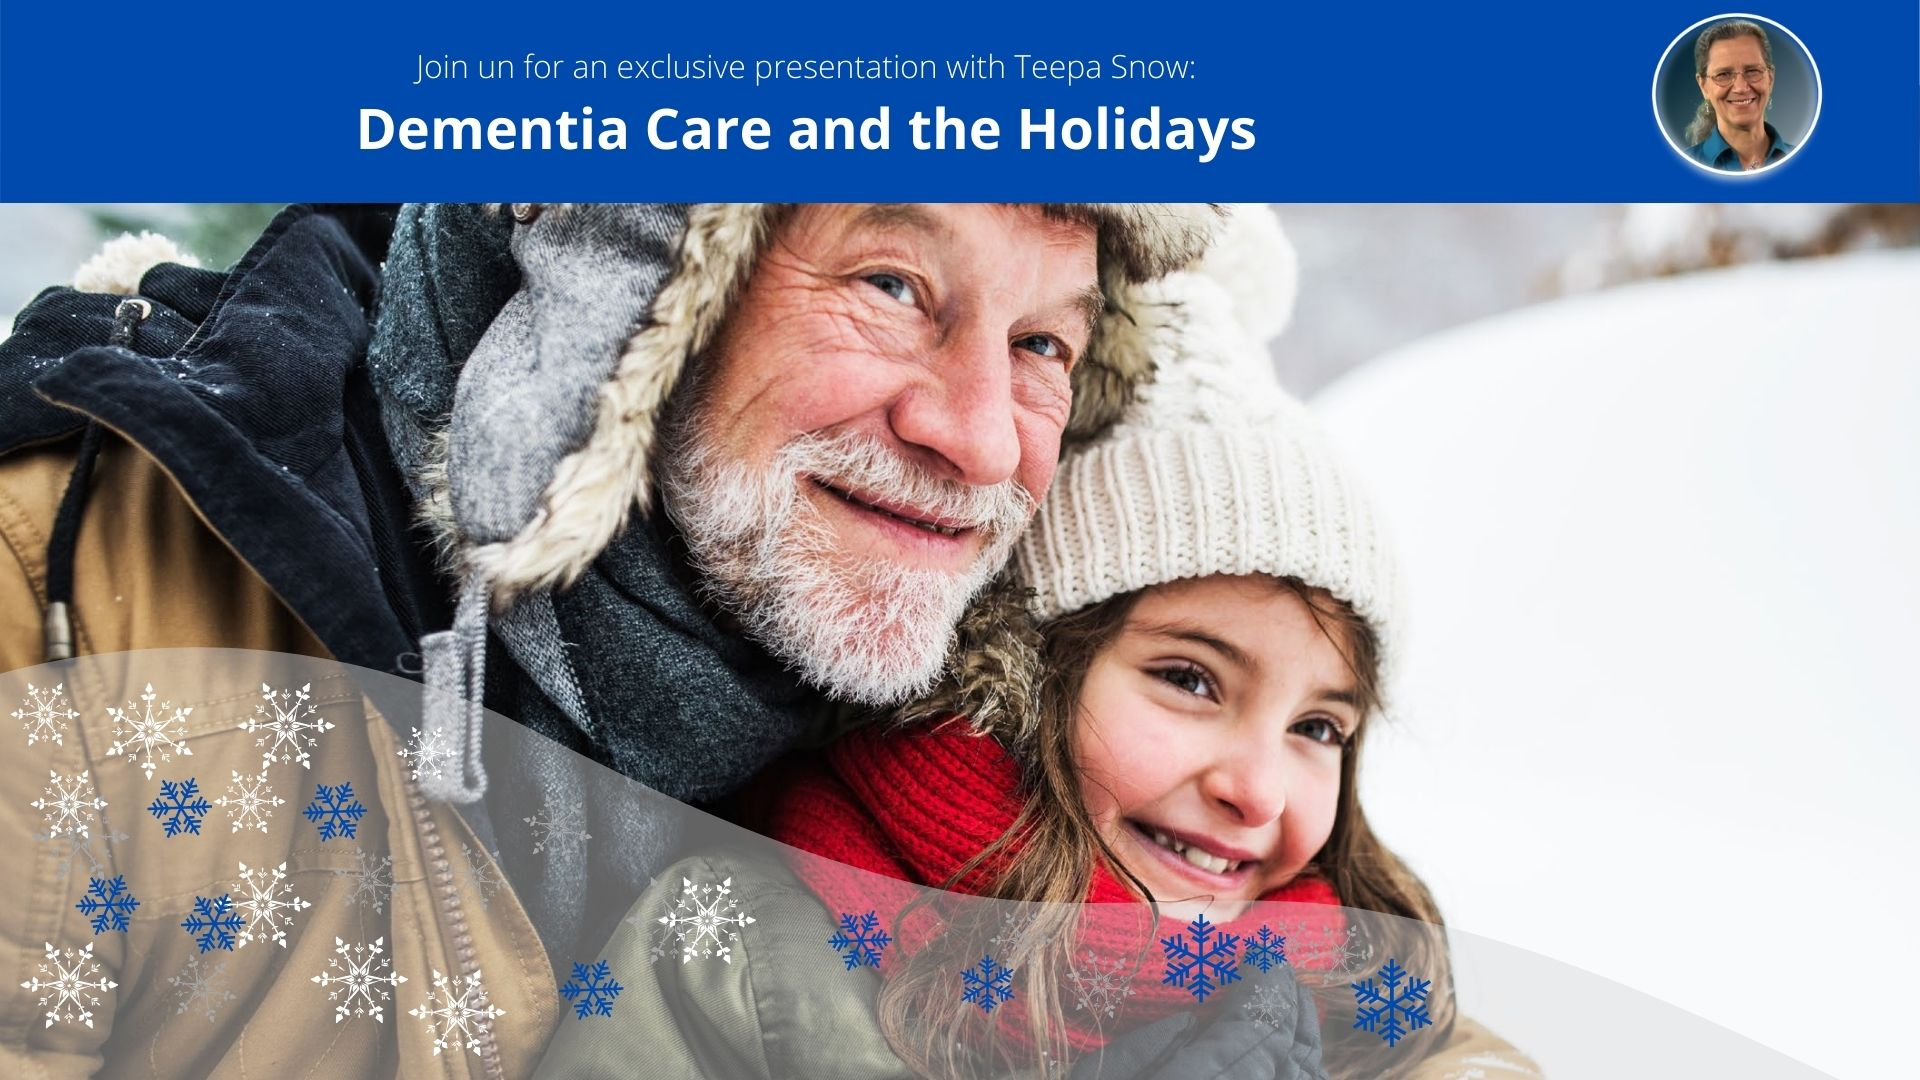 Dementia care and the Holidays